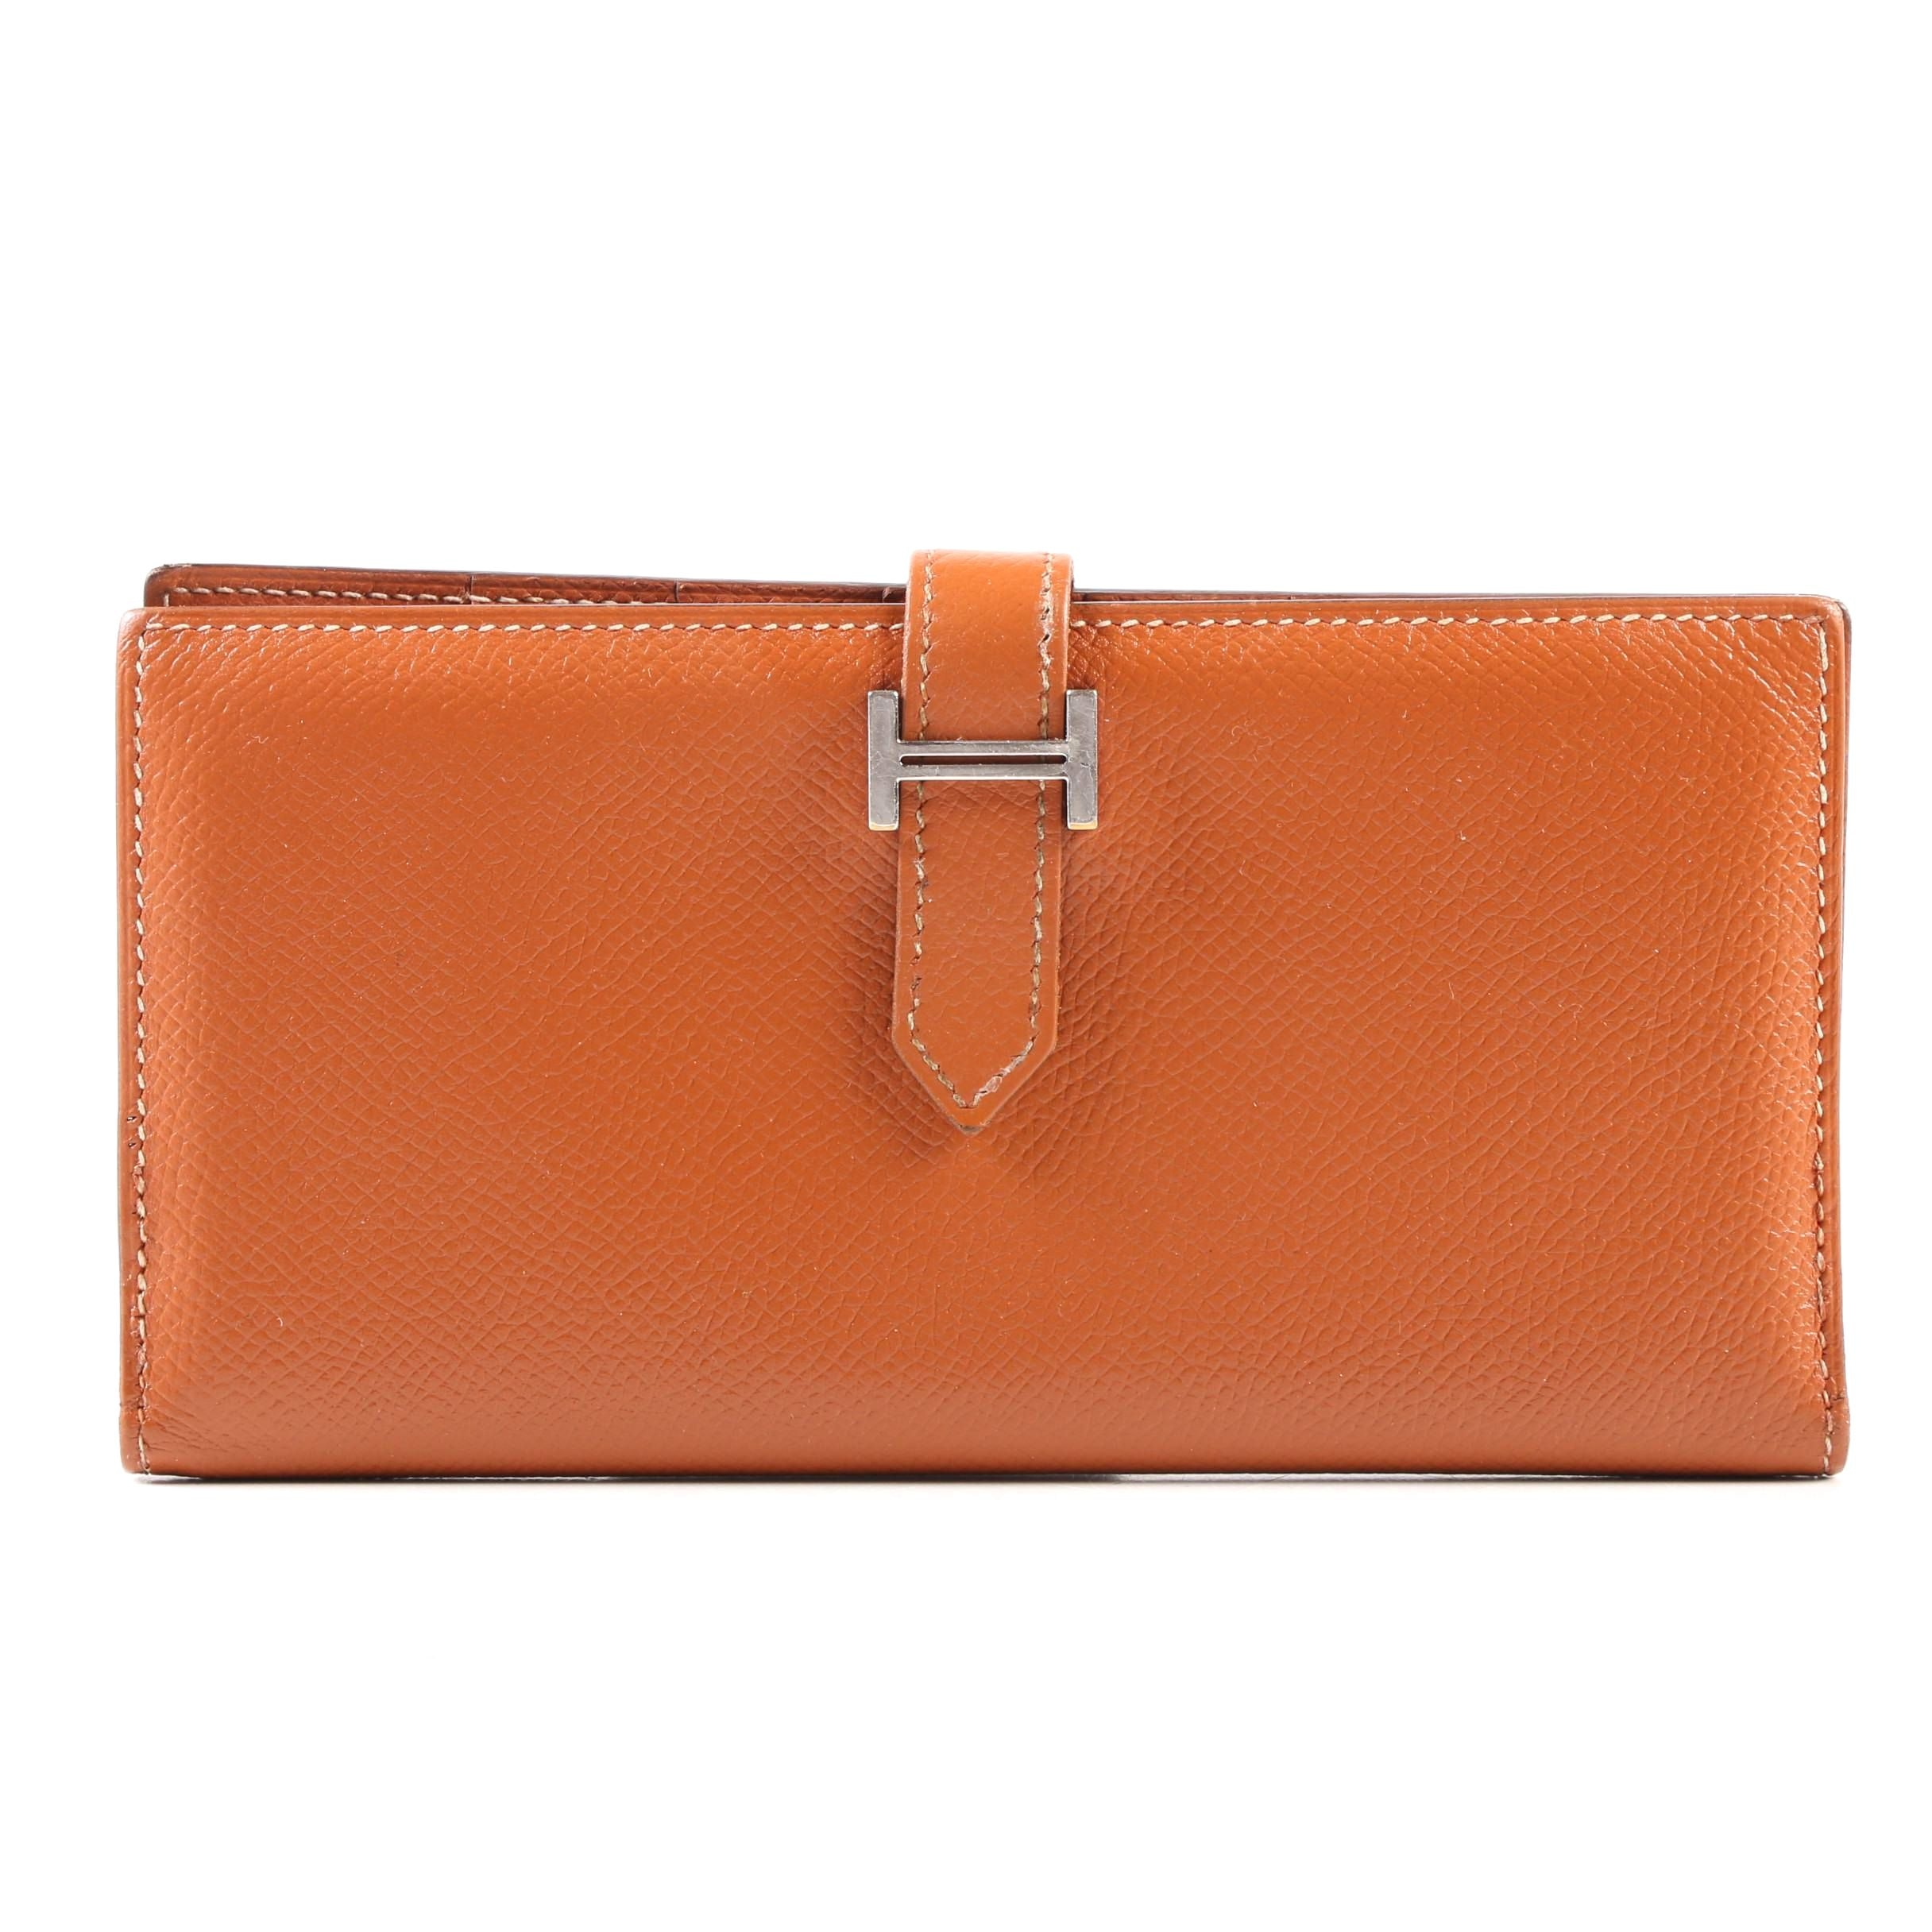 Hermès Bearn Wallet in Cuivre Epsom Calf Leather with Palladium Plating